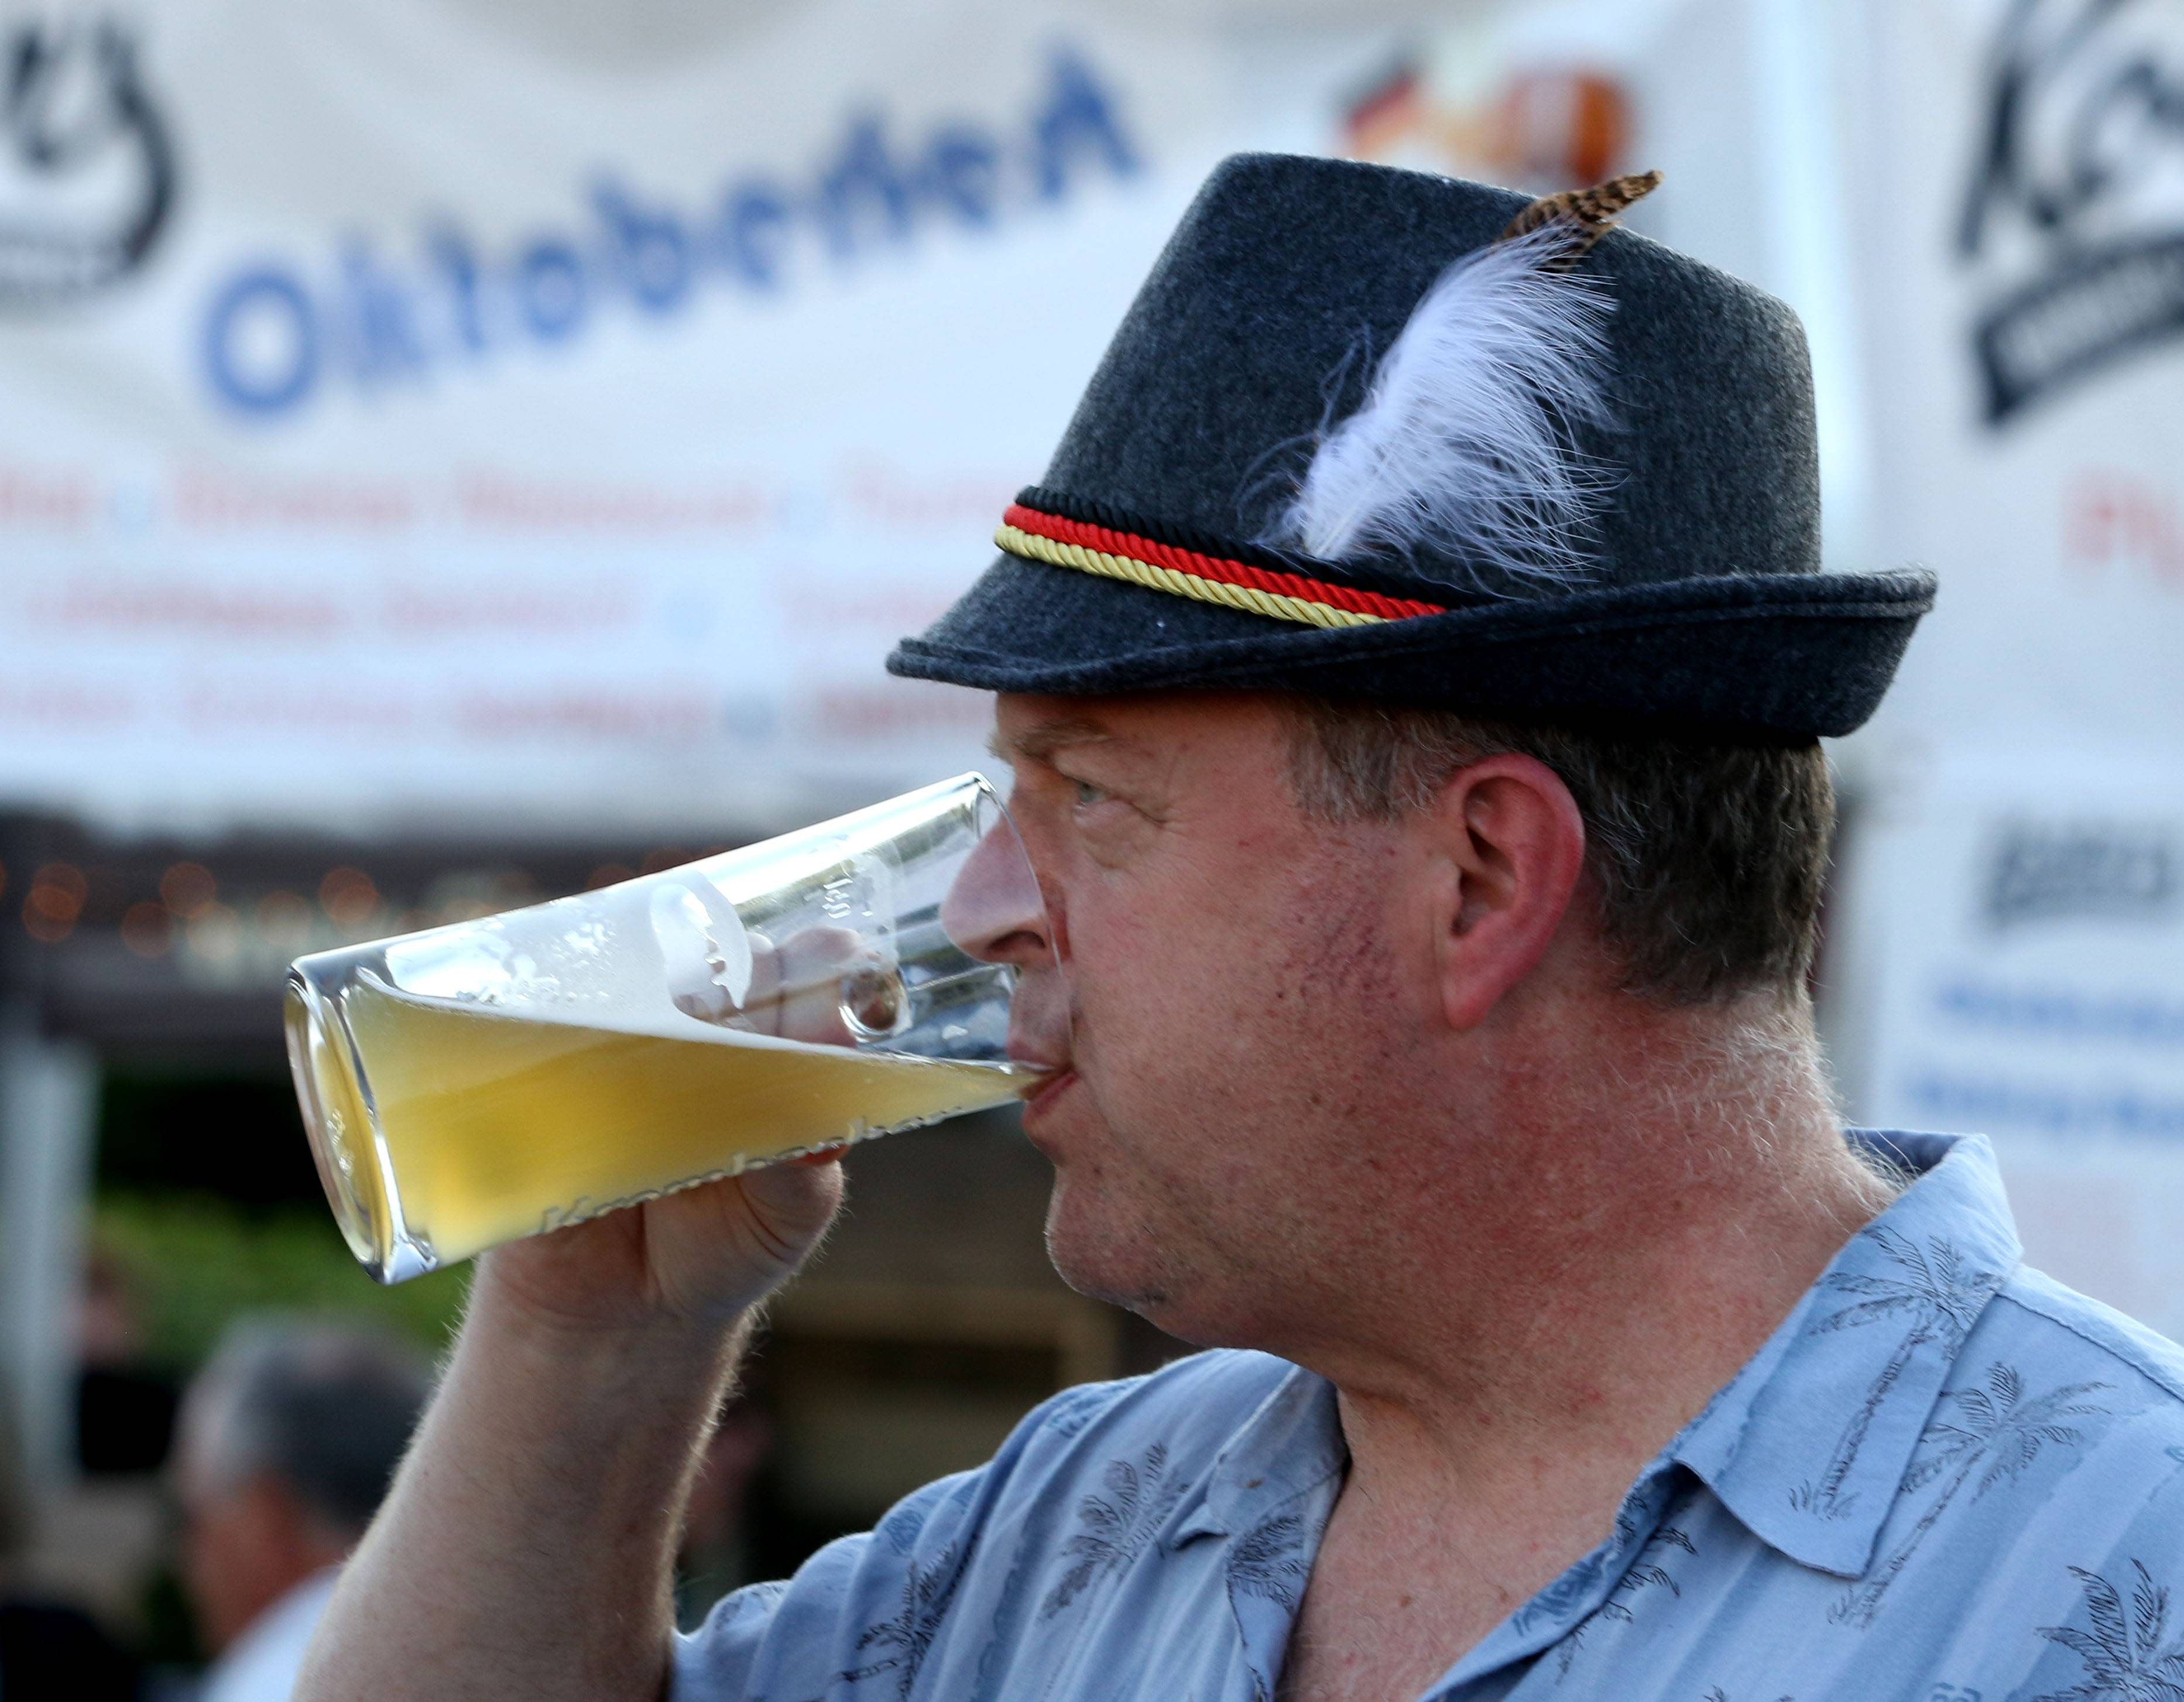 Greg Ivaska of Mount Prospect takes a swig of his beer Friday night during the Rotary Club of Palatine's Oktoberfest.